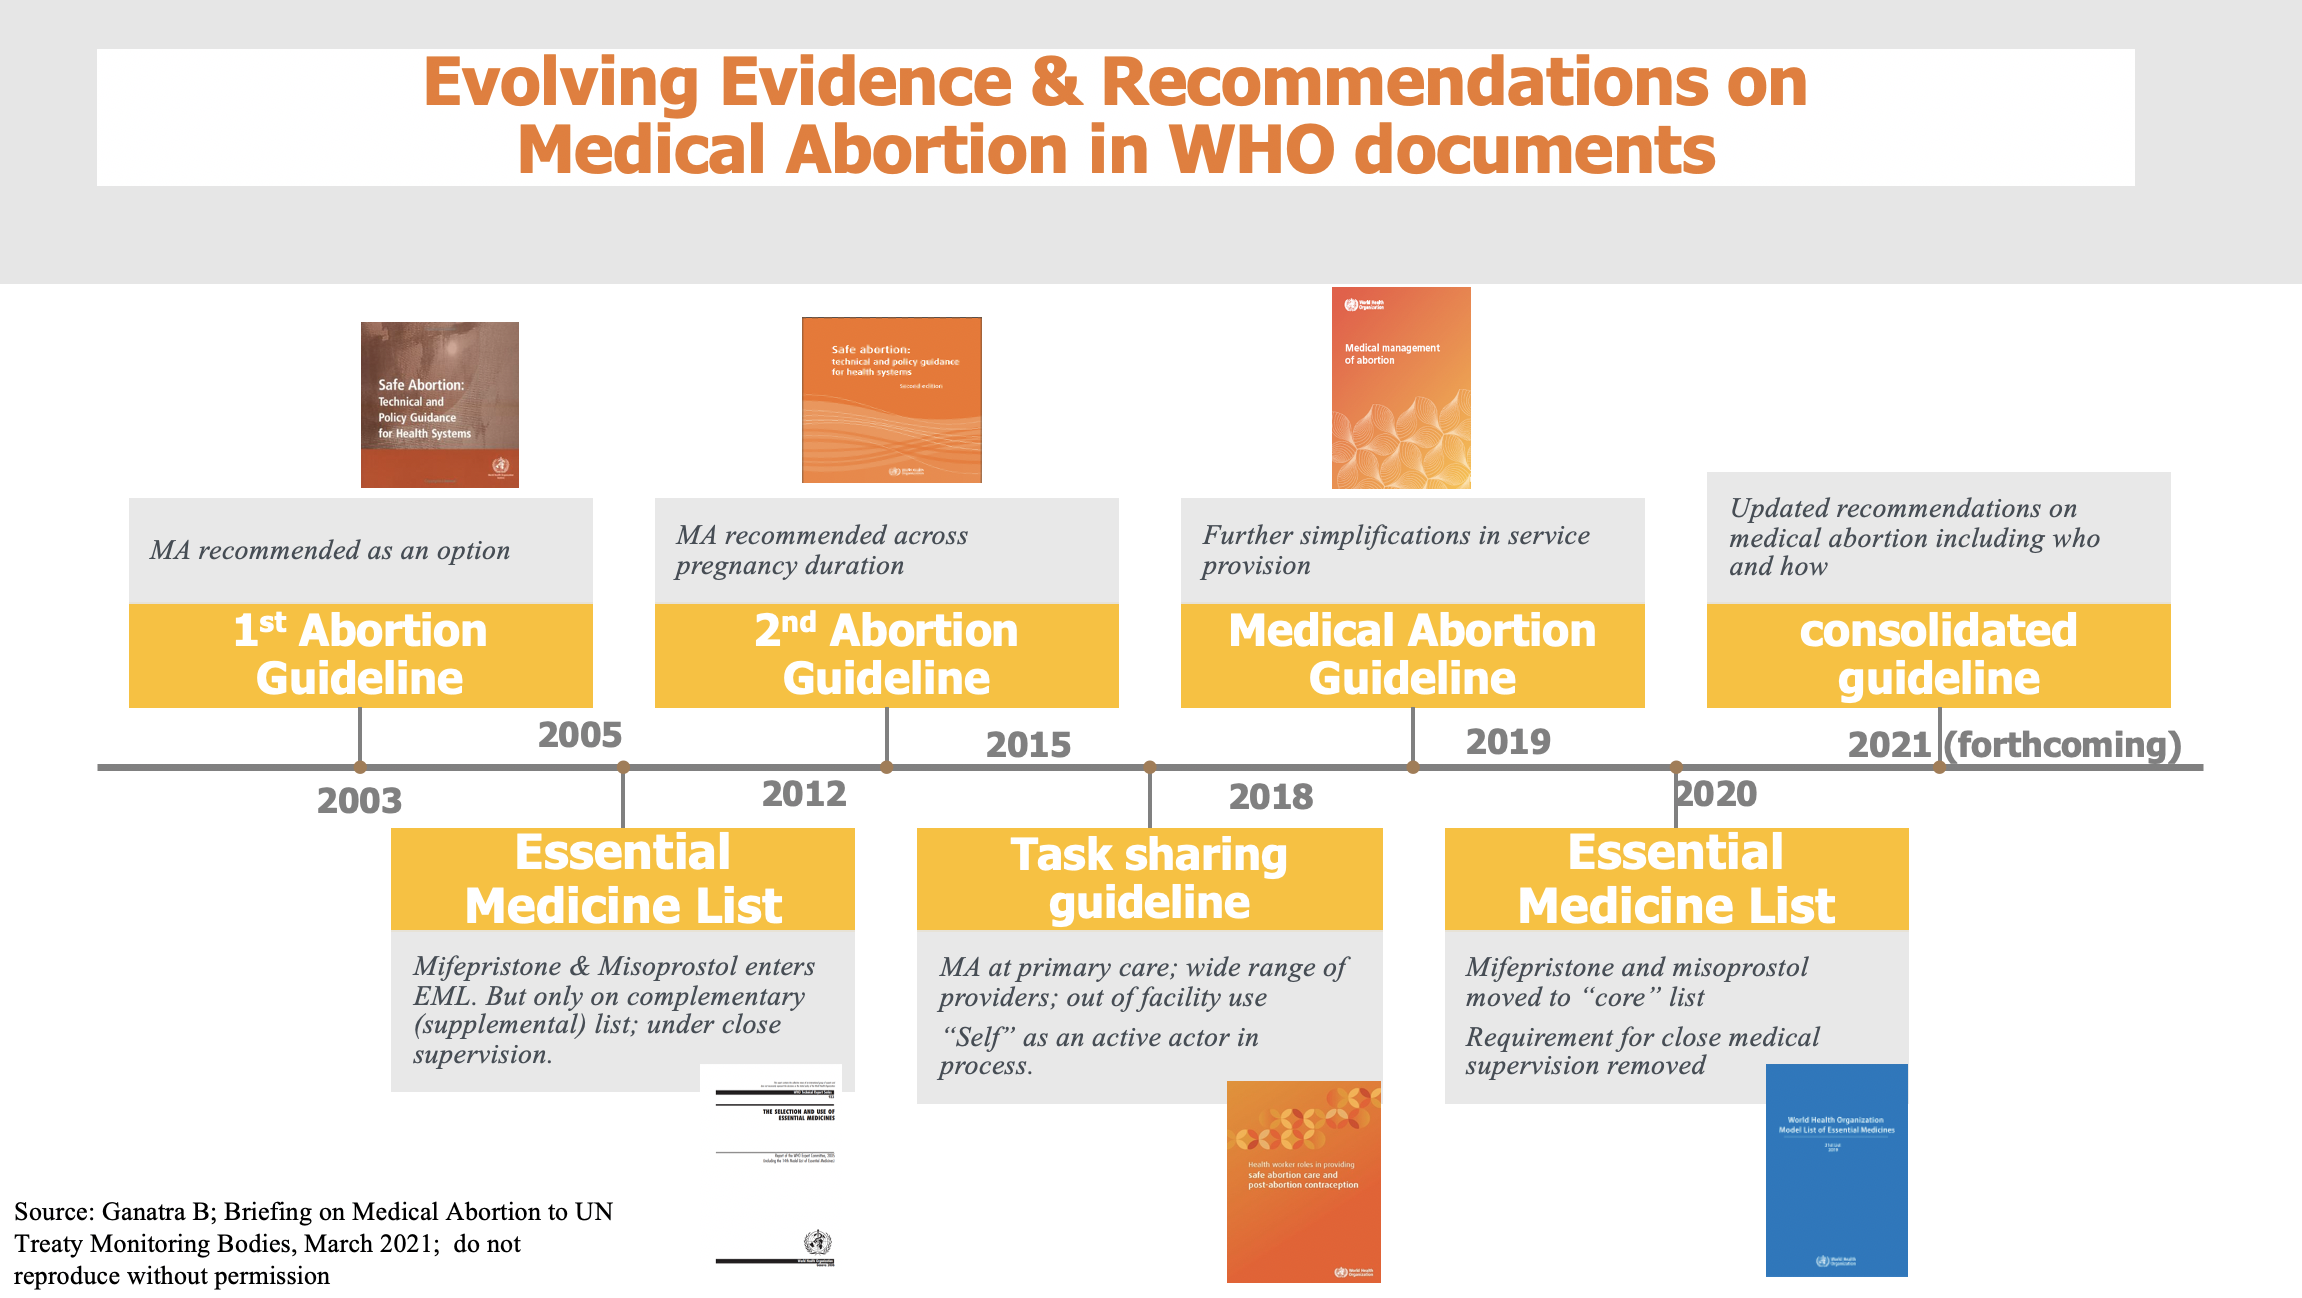 medical abortion recommendation timeline WHO